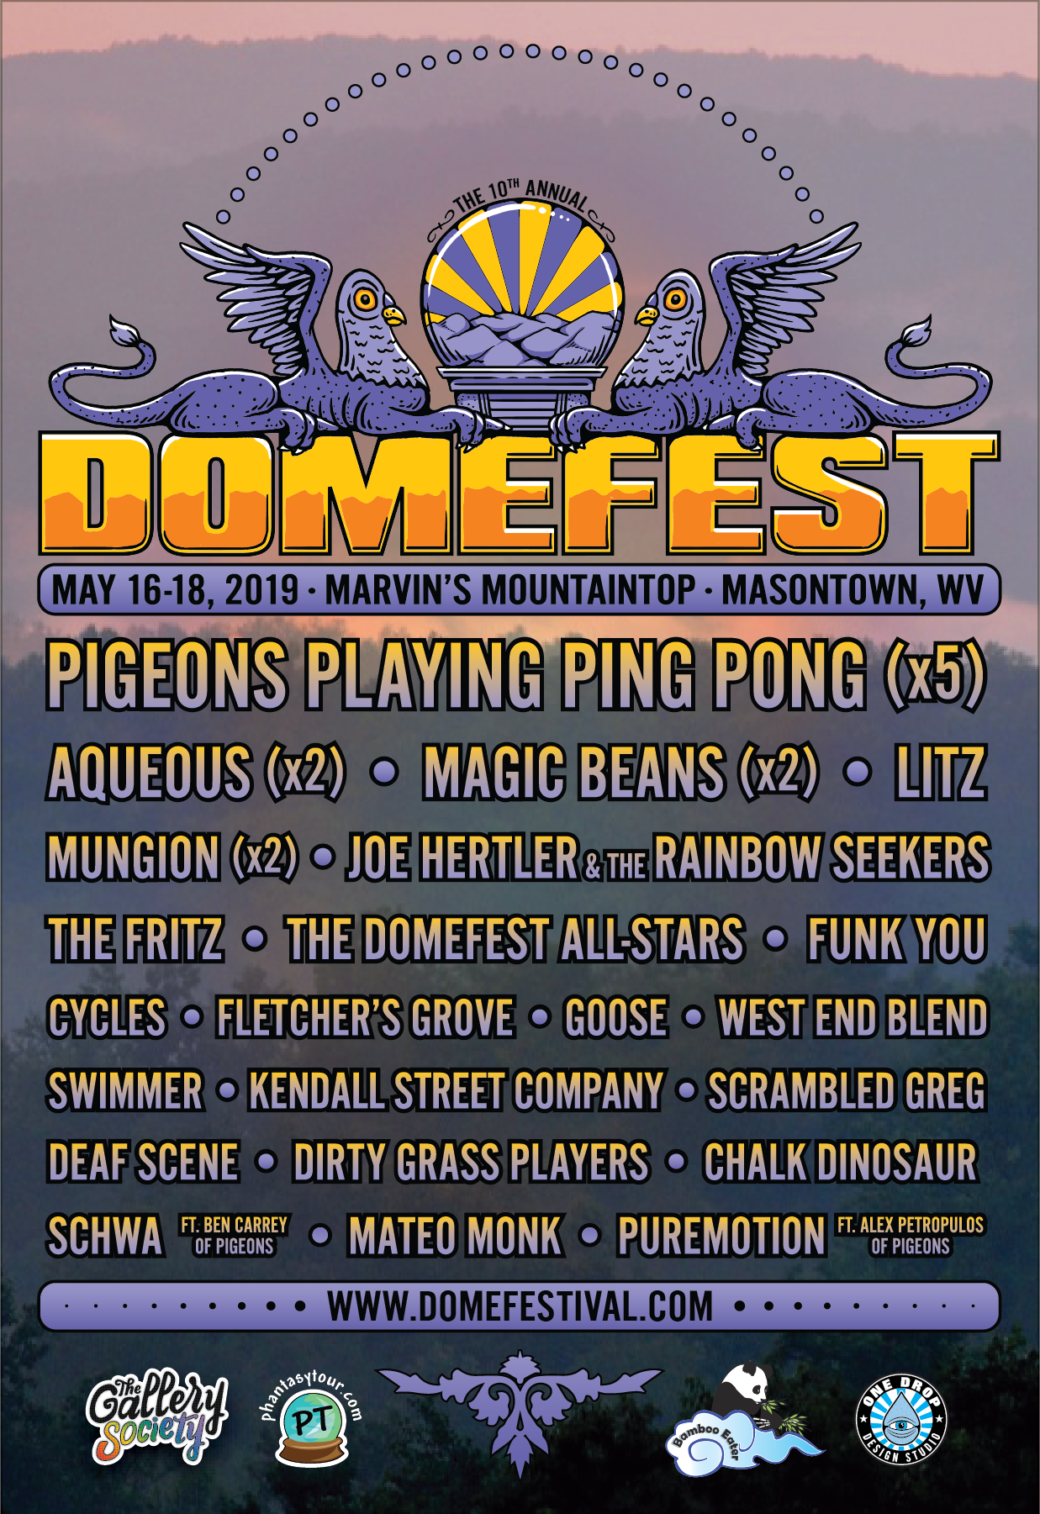 Final lineup for Domefest 2019